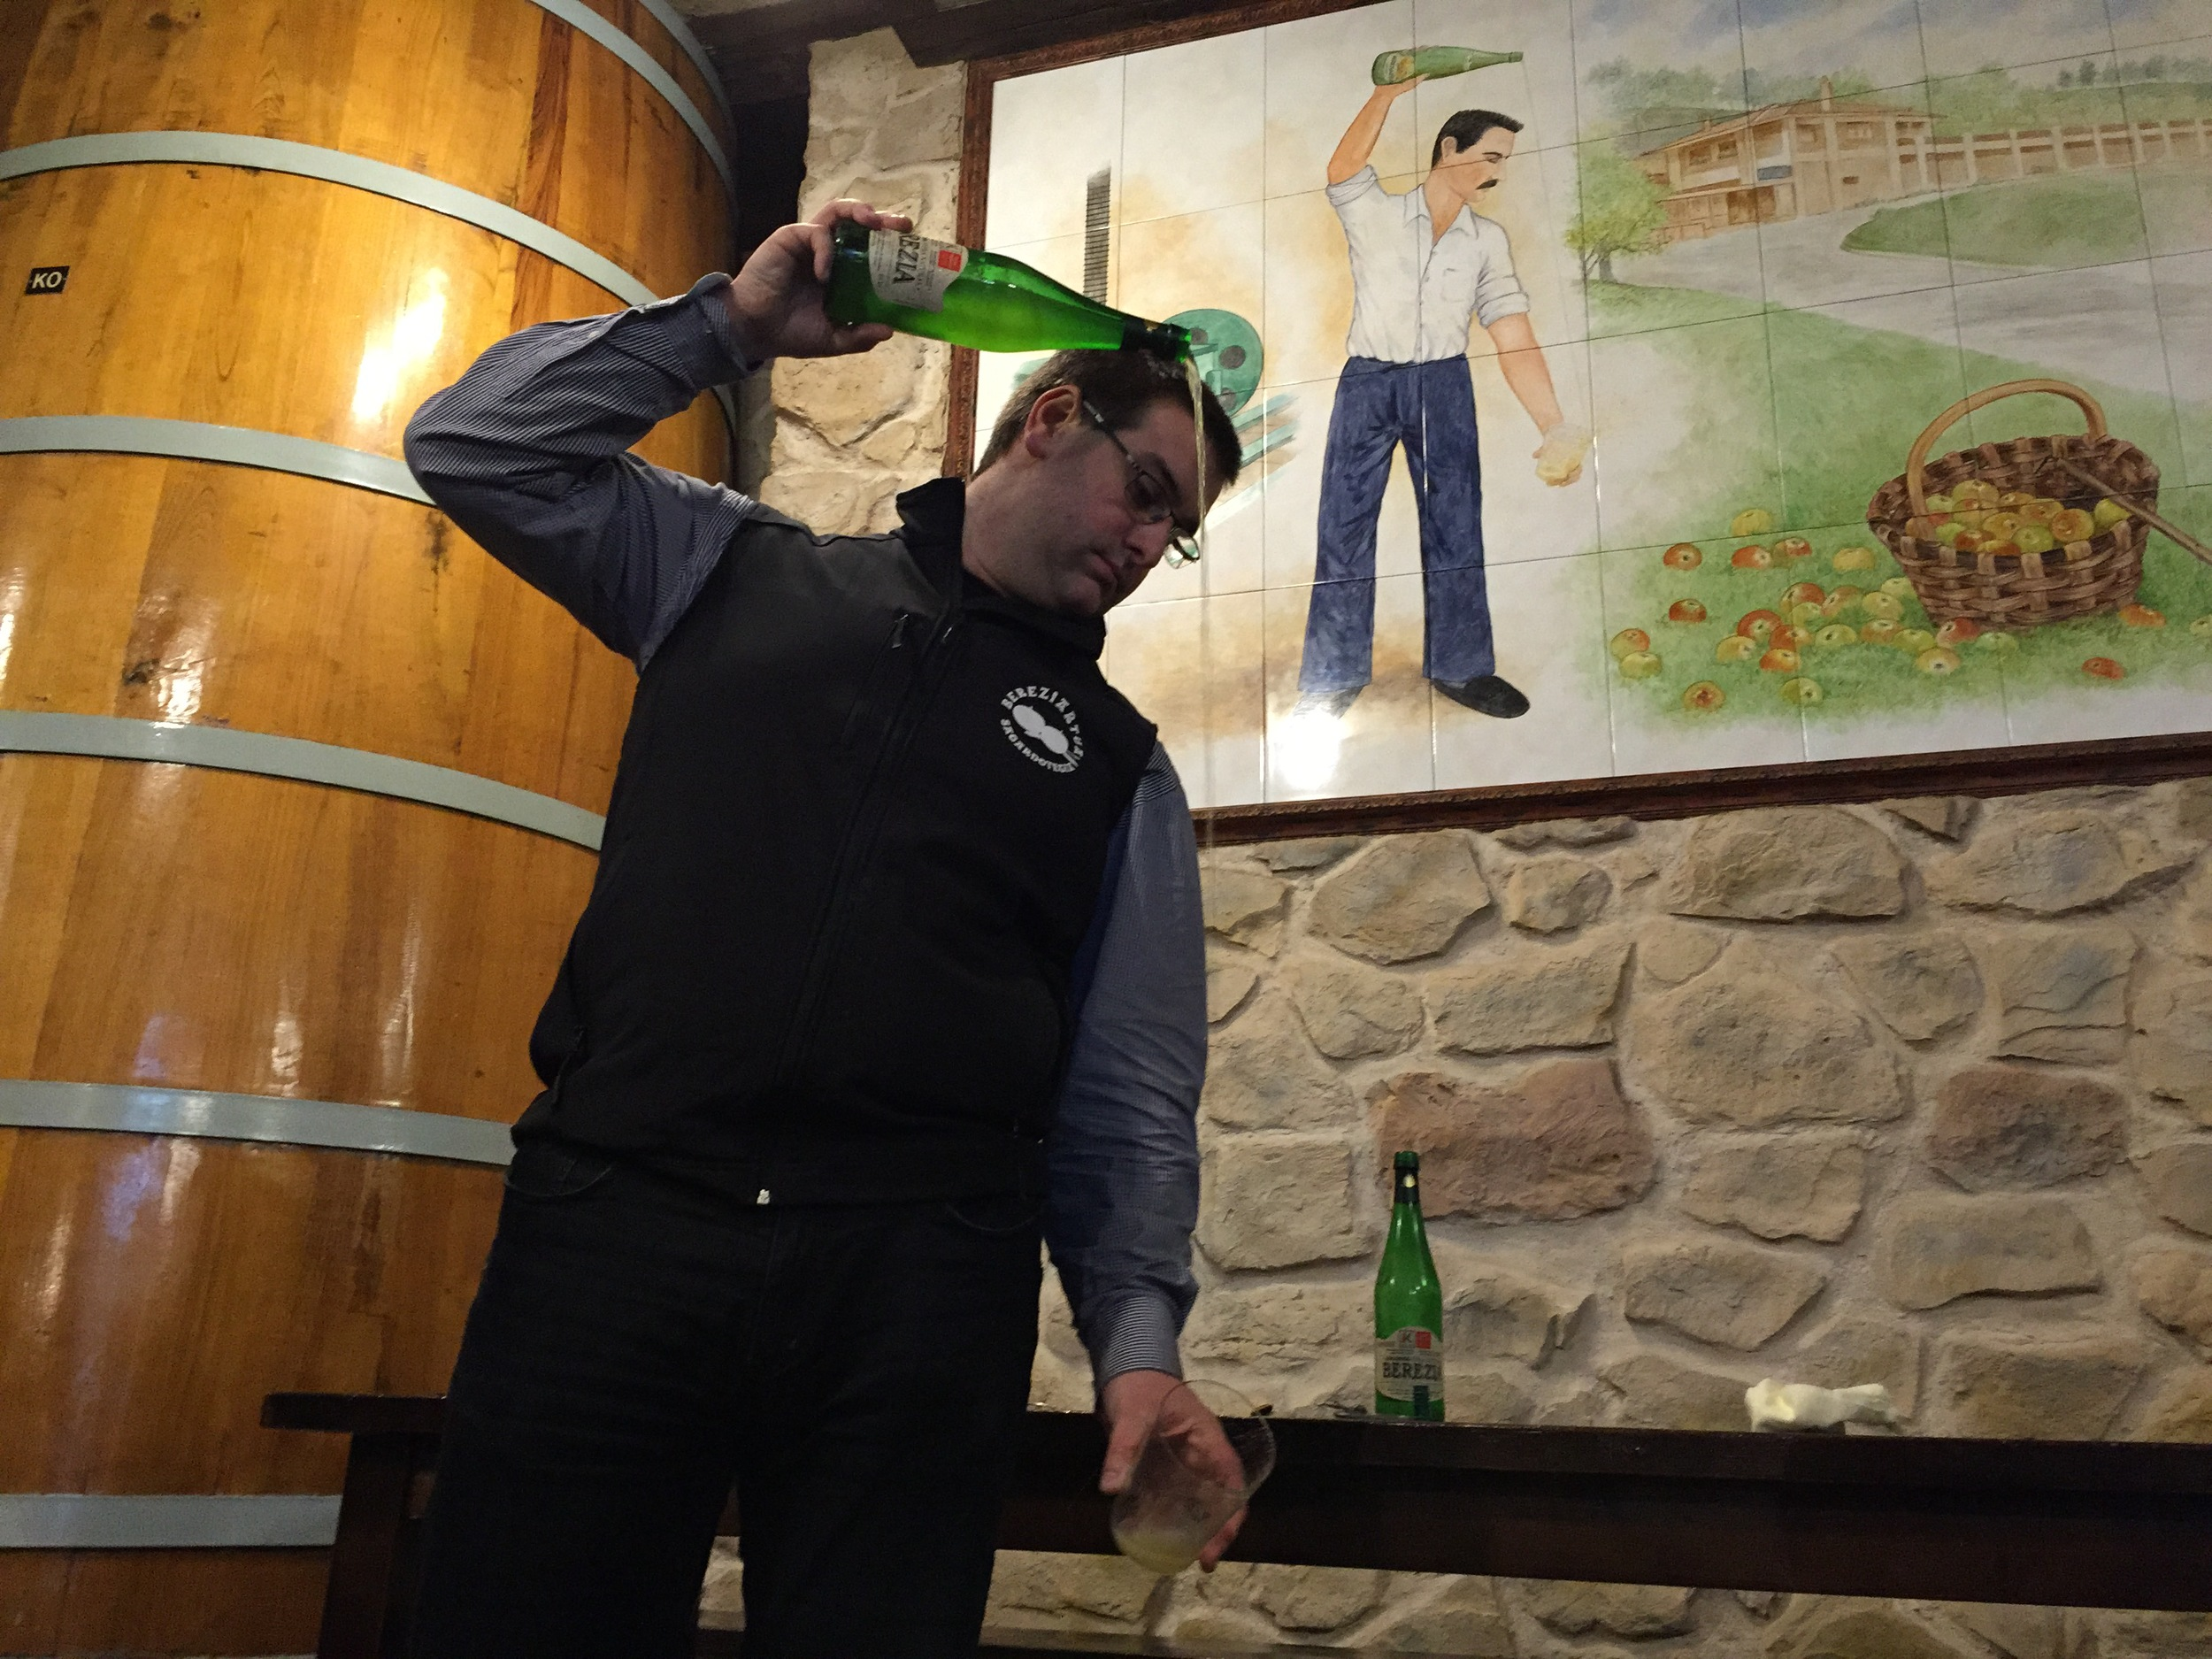 Like Father Like Son, Aitor Bereziartua, Fourth Generation Cider Maker